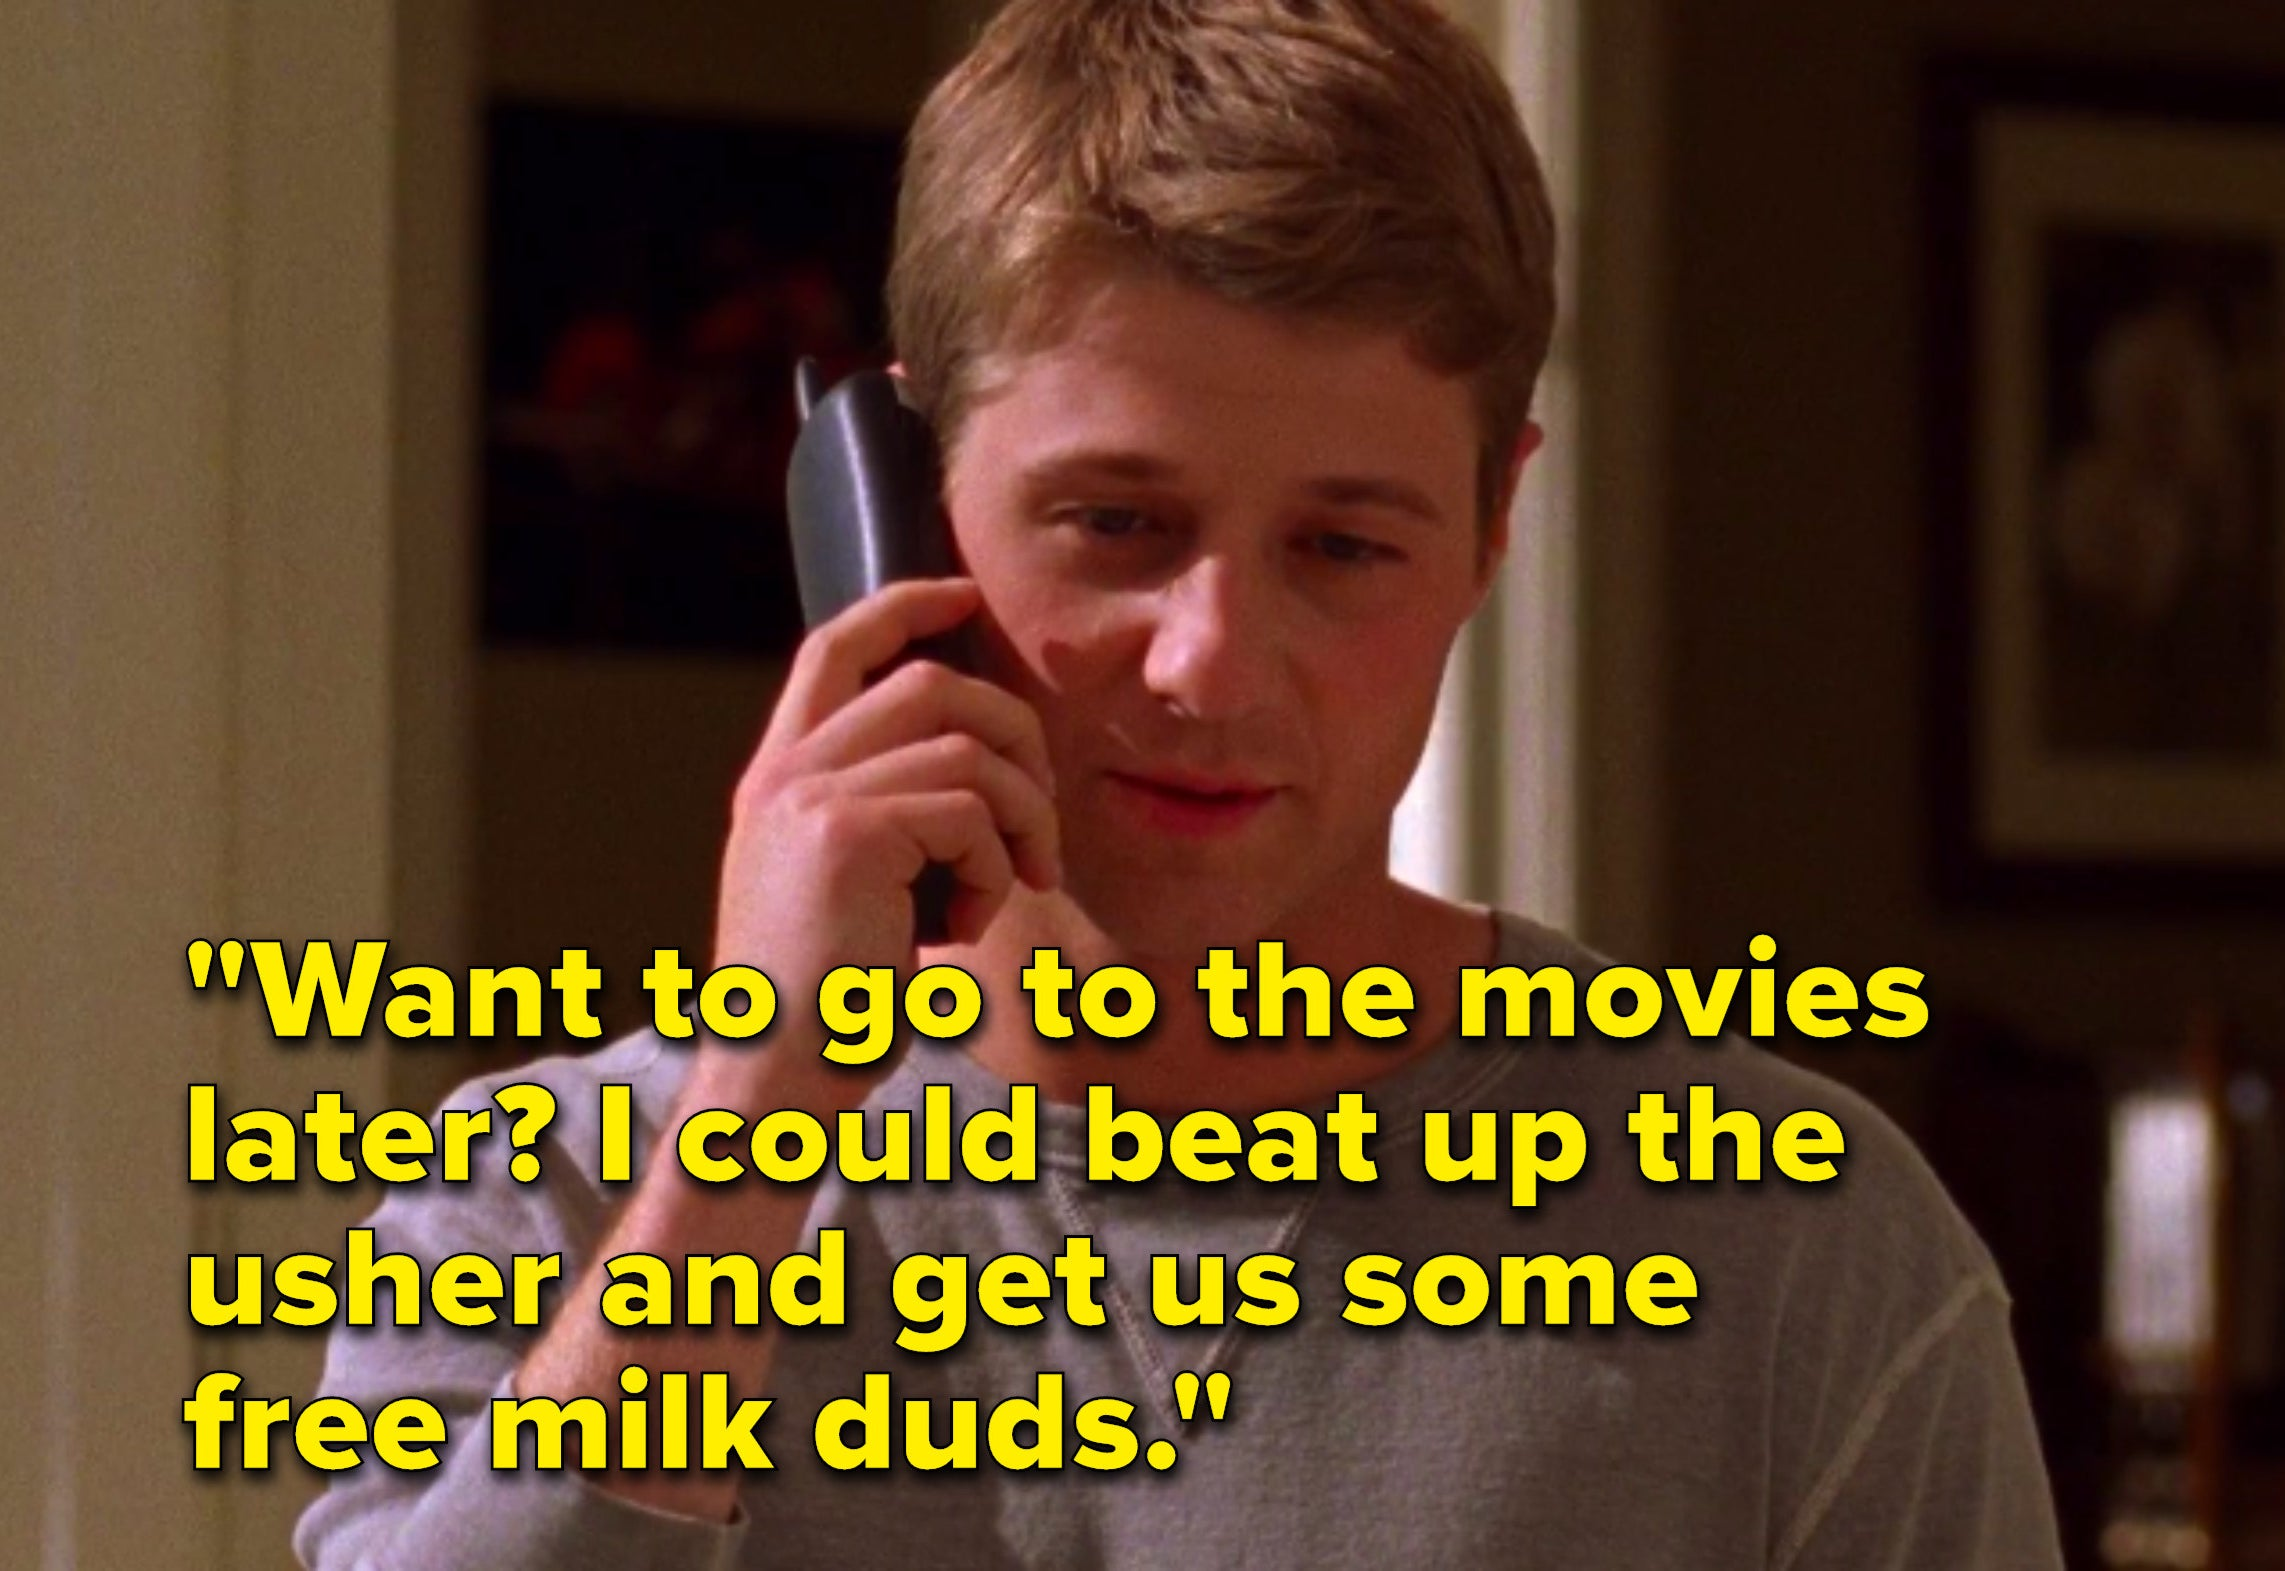 Ryan jokes that he could beat up the usher at the movies for free milk duds